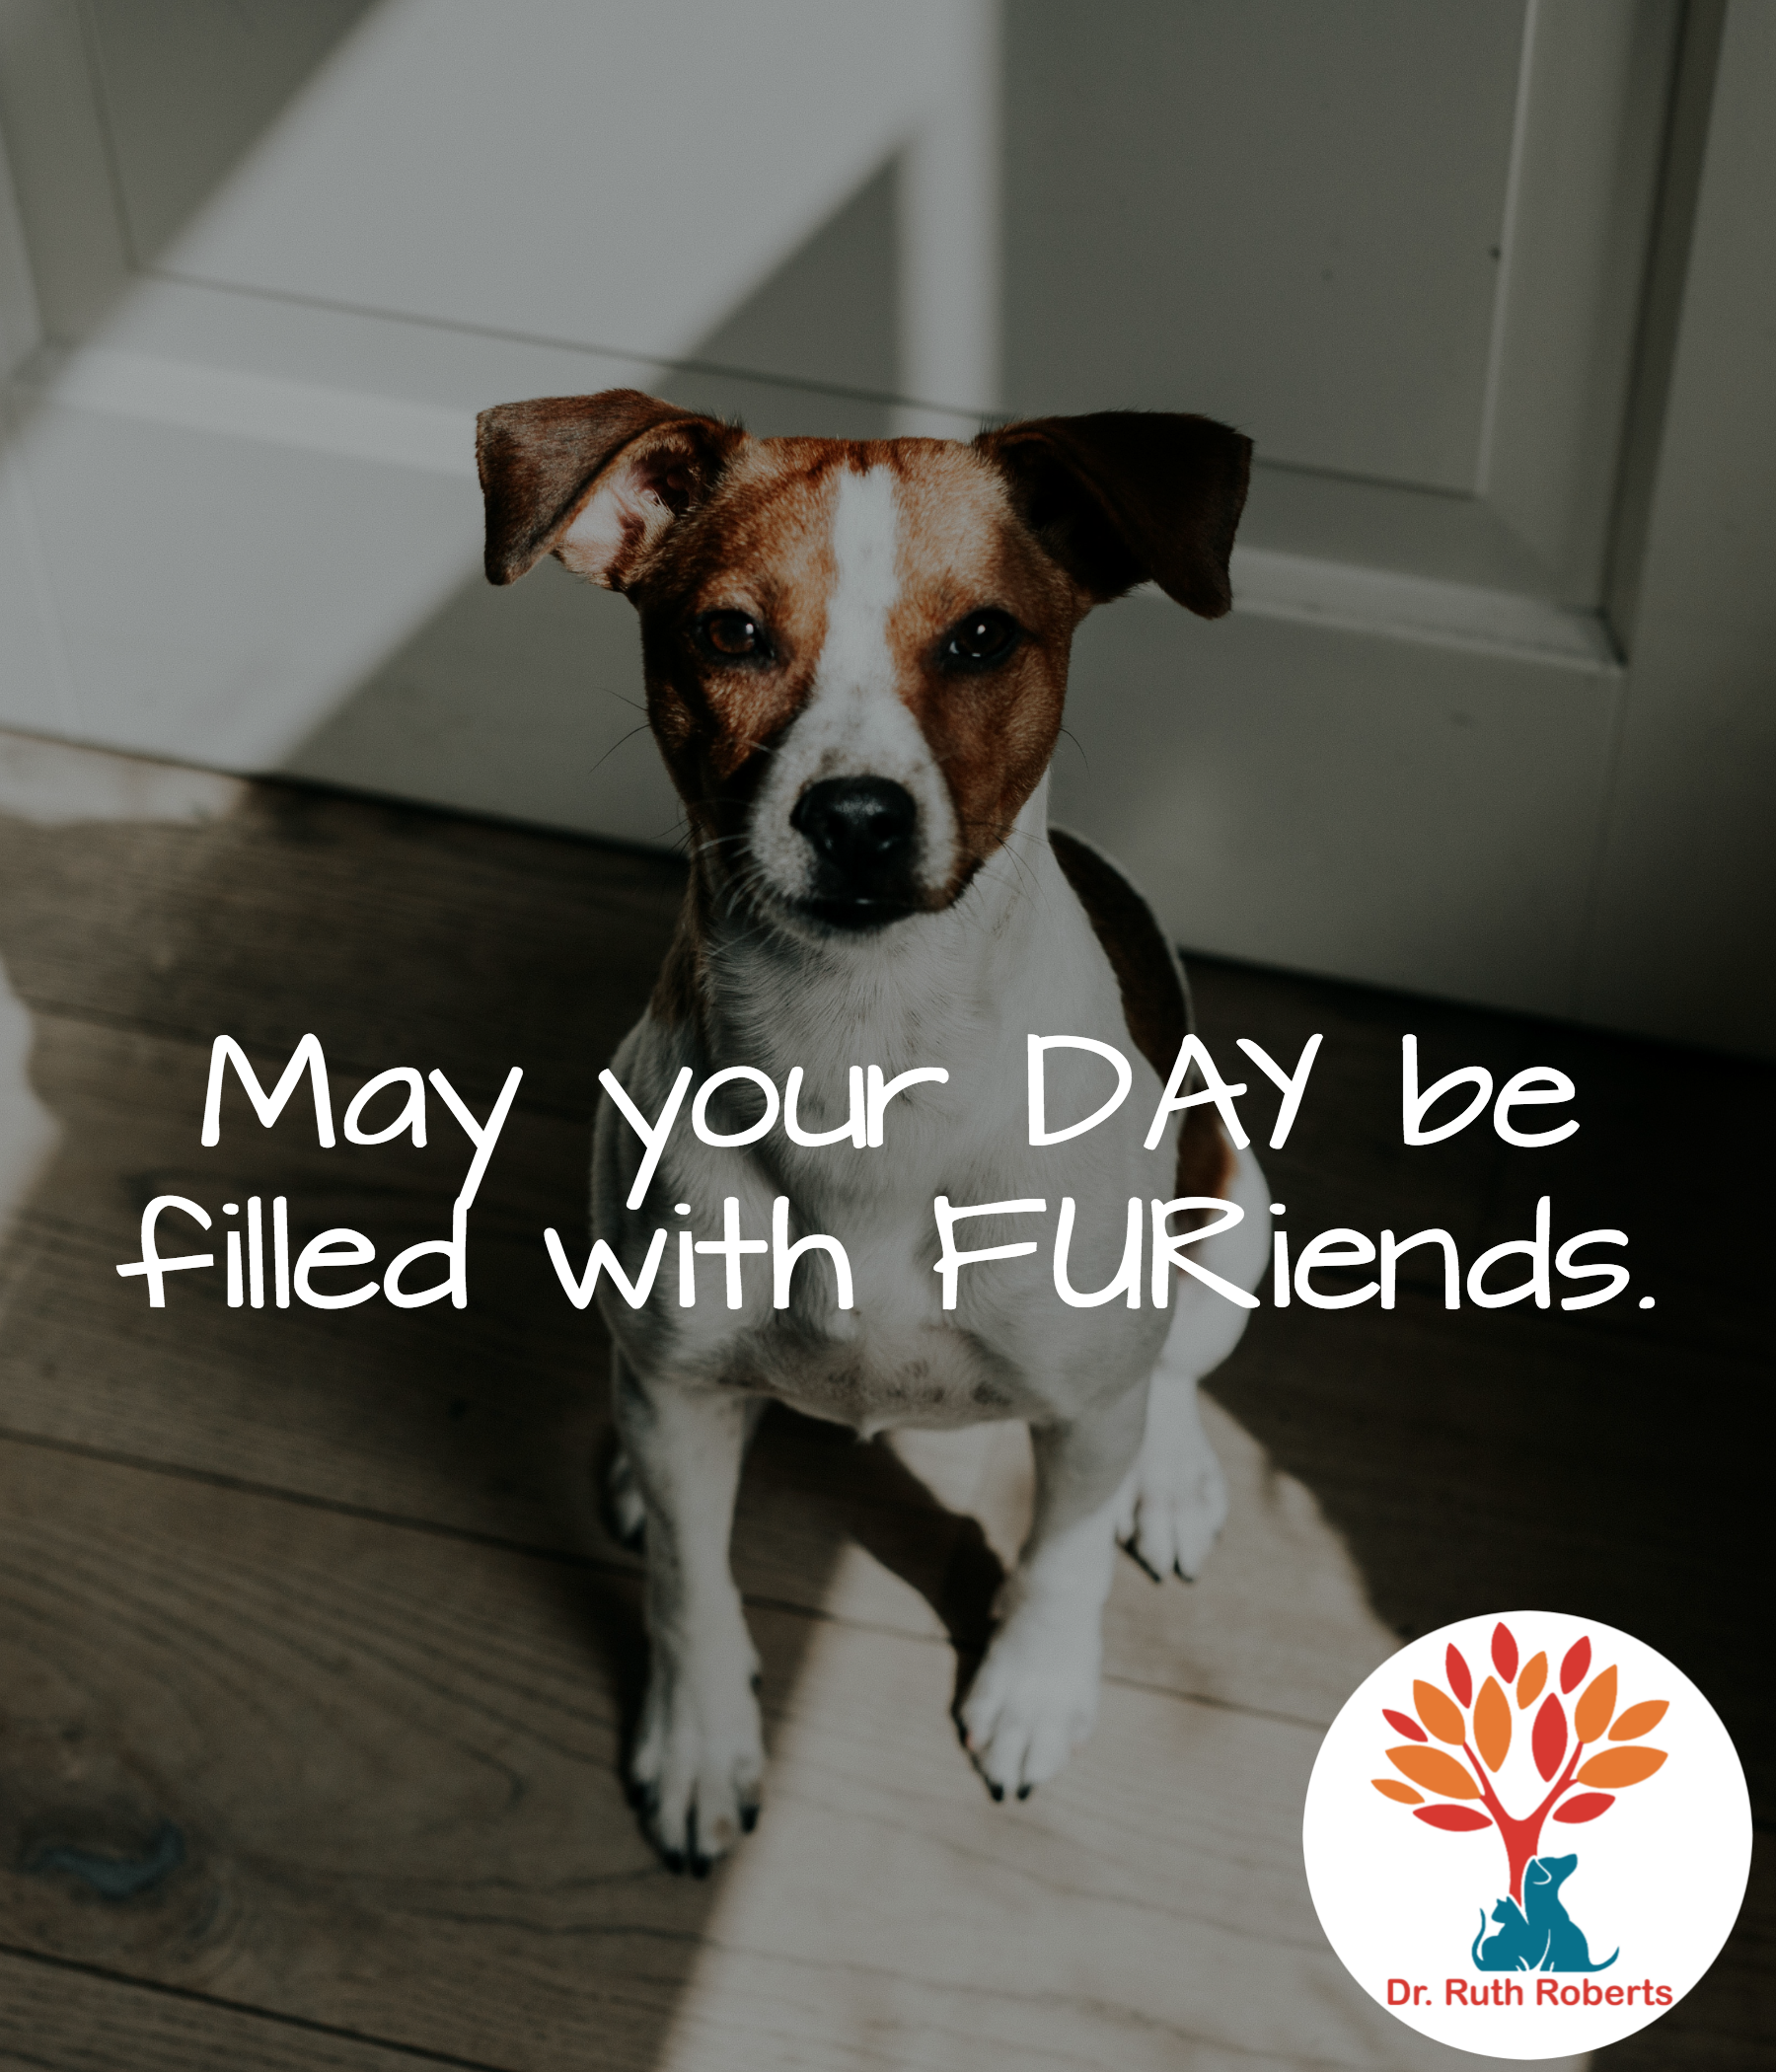 May your day be filled with FURiends. goodmorning dog